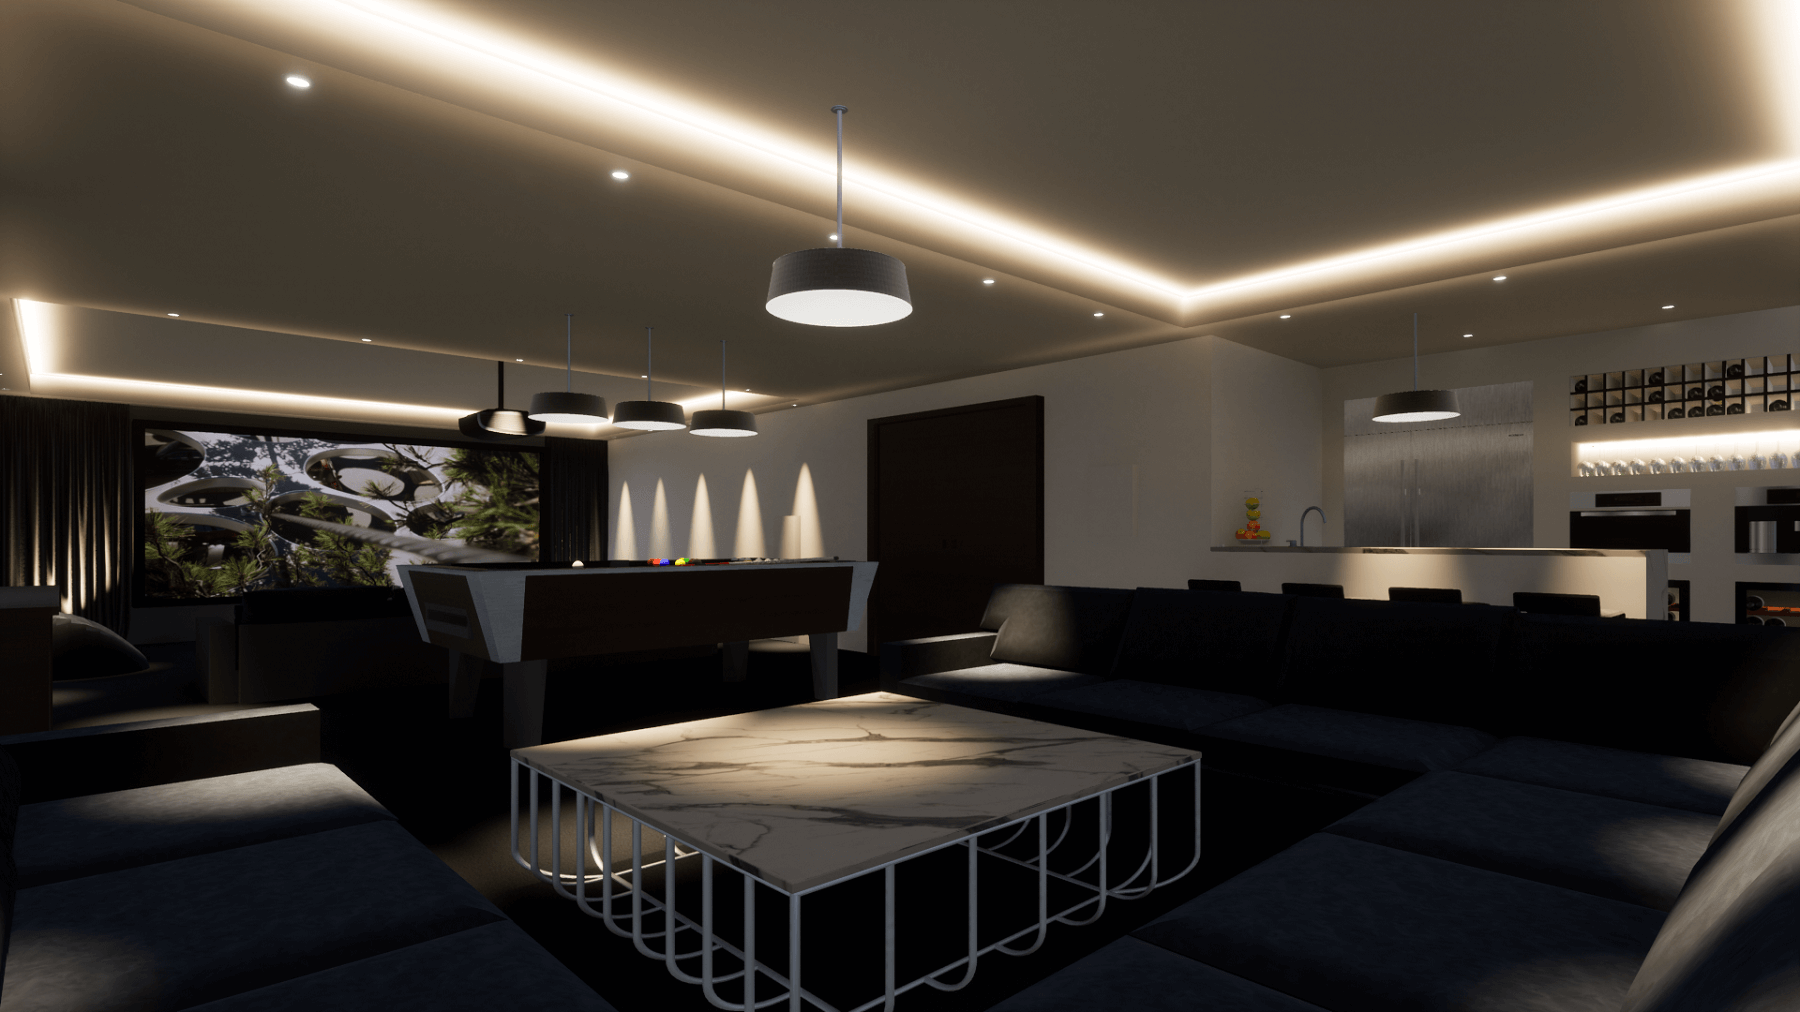 Lighting Zones in a Home Entertainment Space